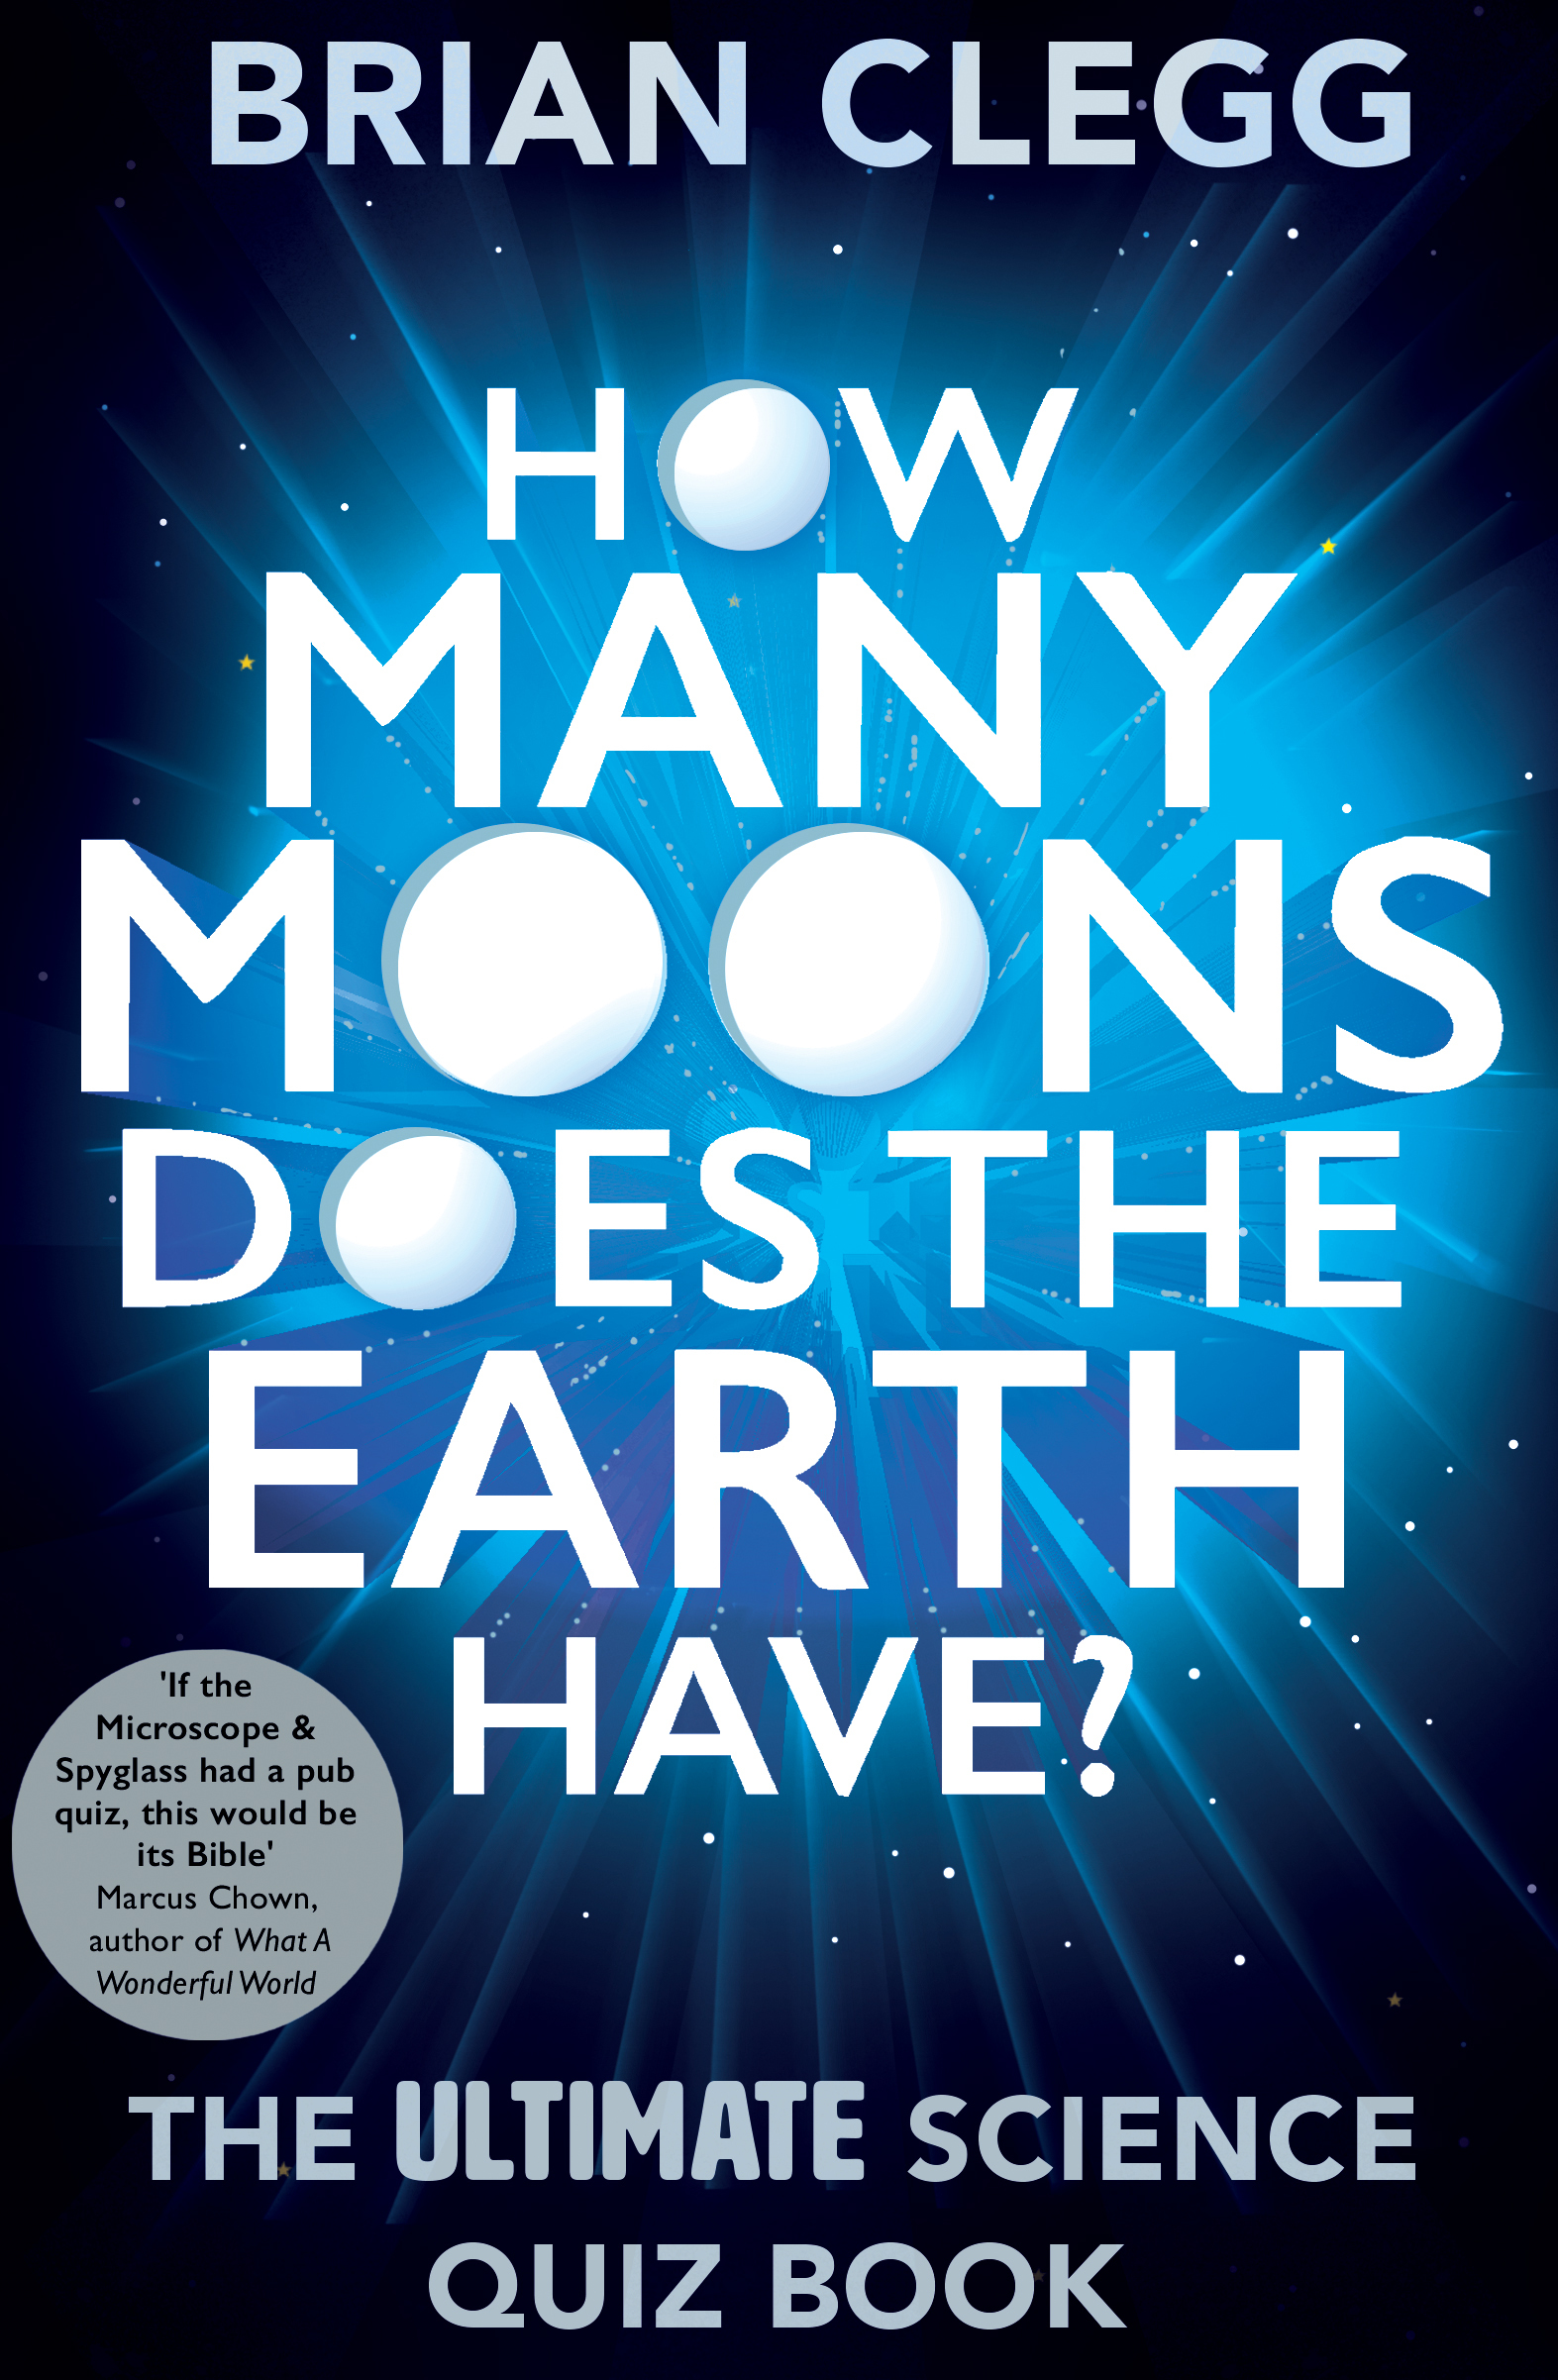 How many moons does the Earth have    the ultimate science quiz book-Icon Books Ltd (2015)